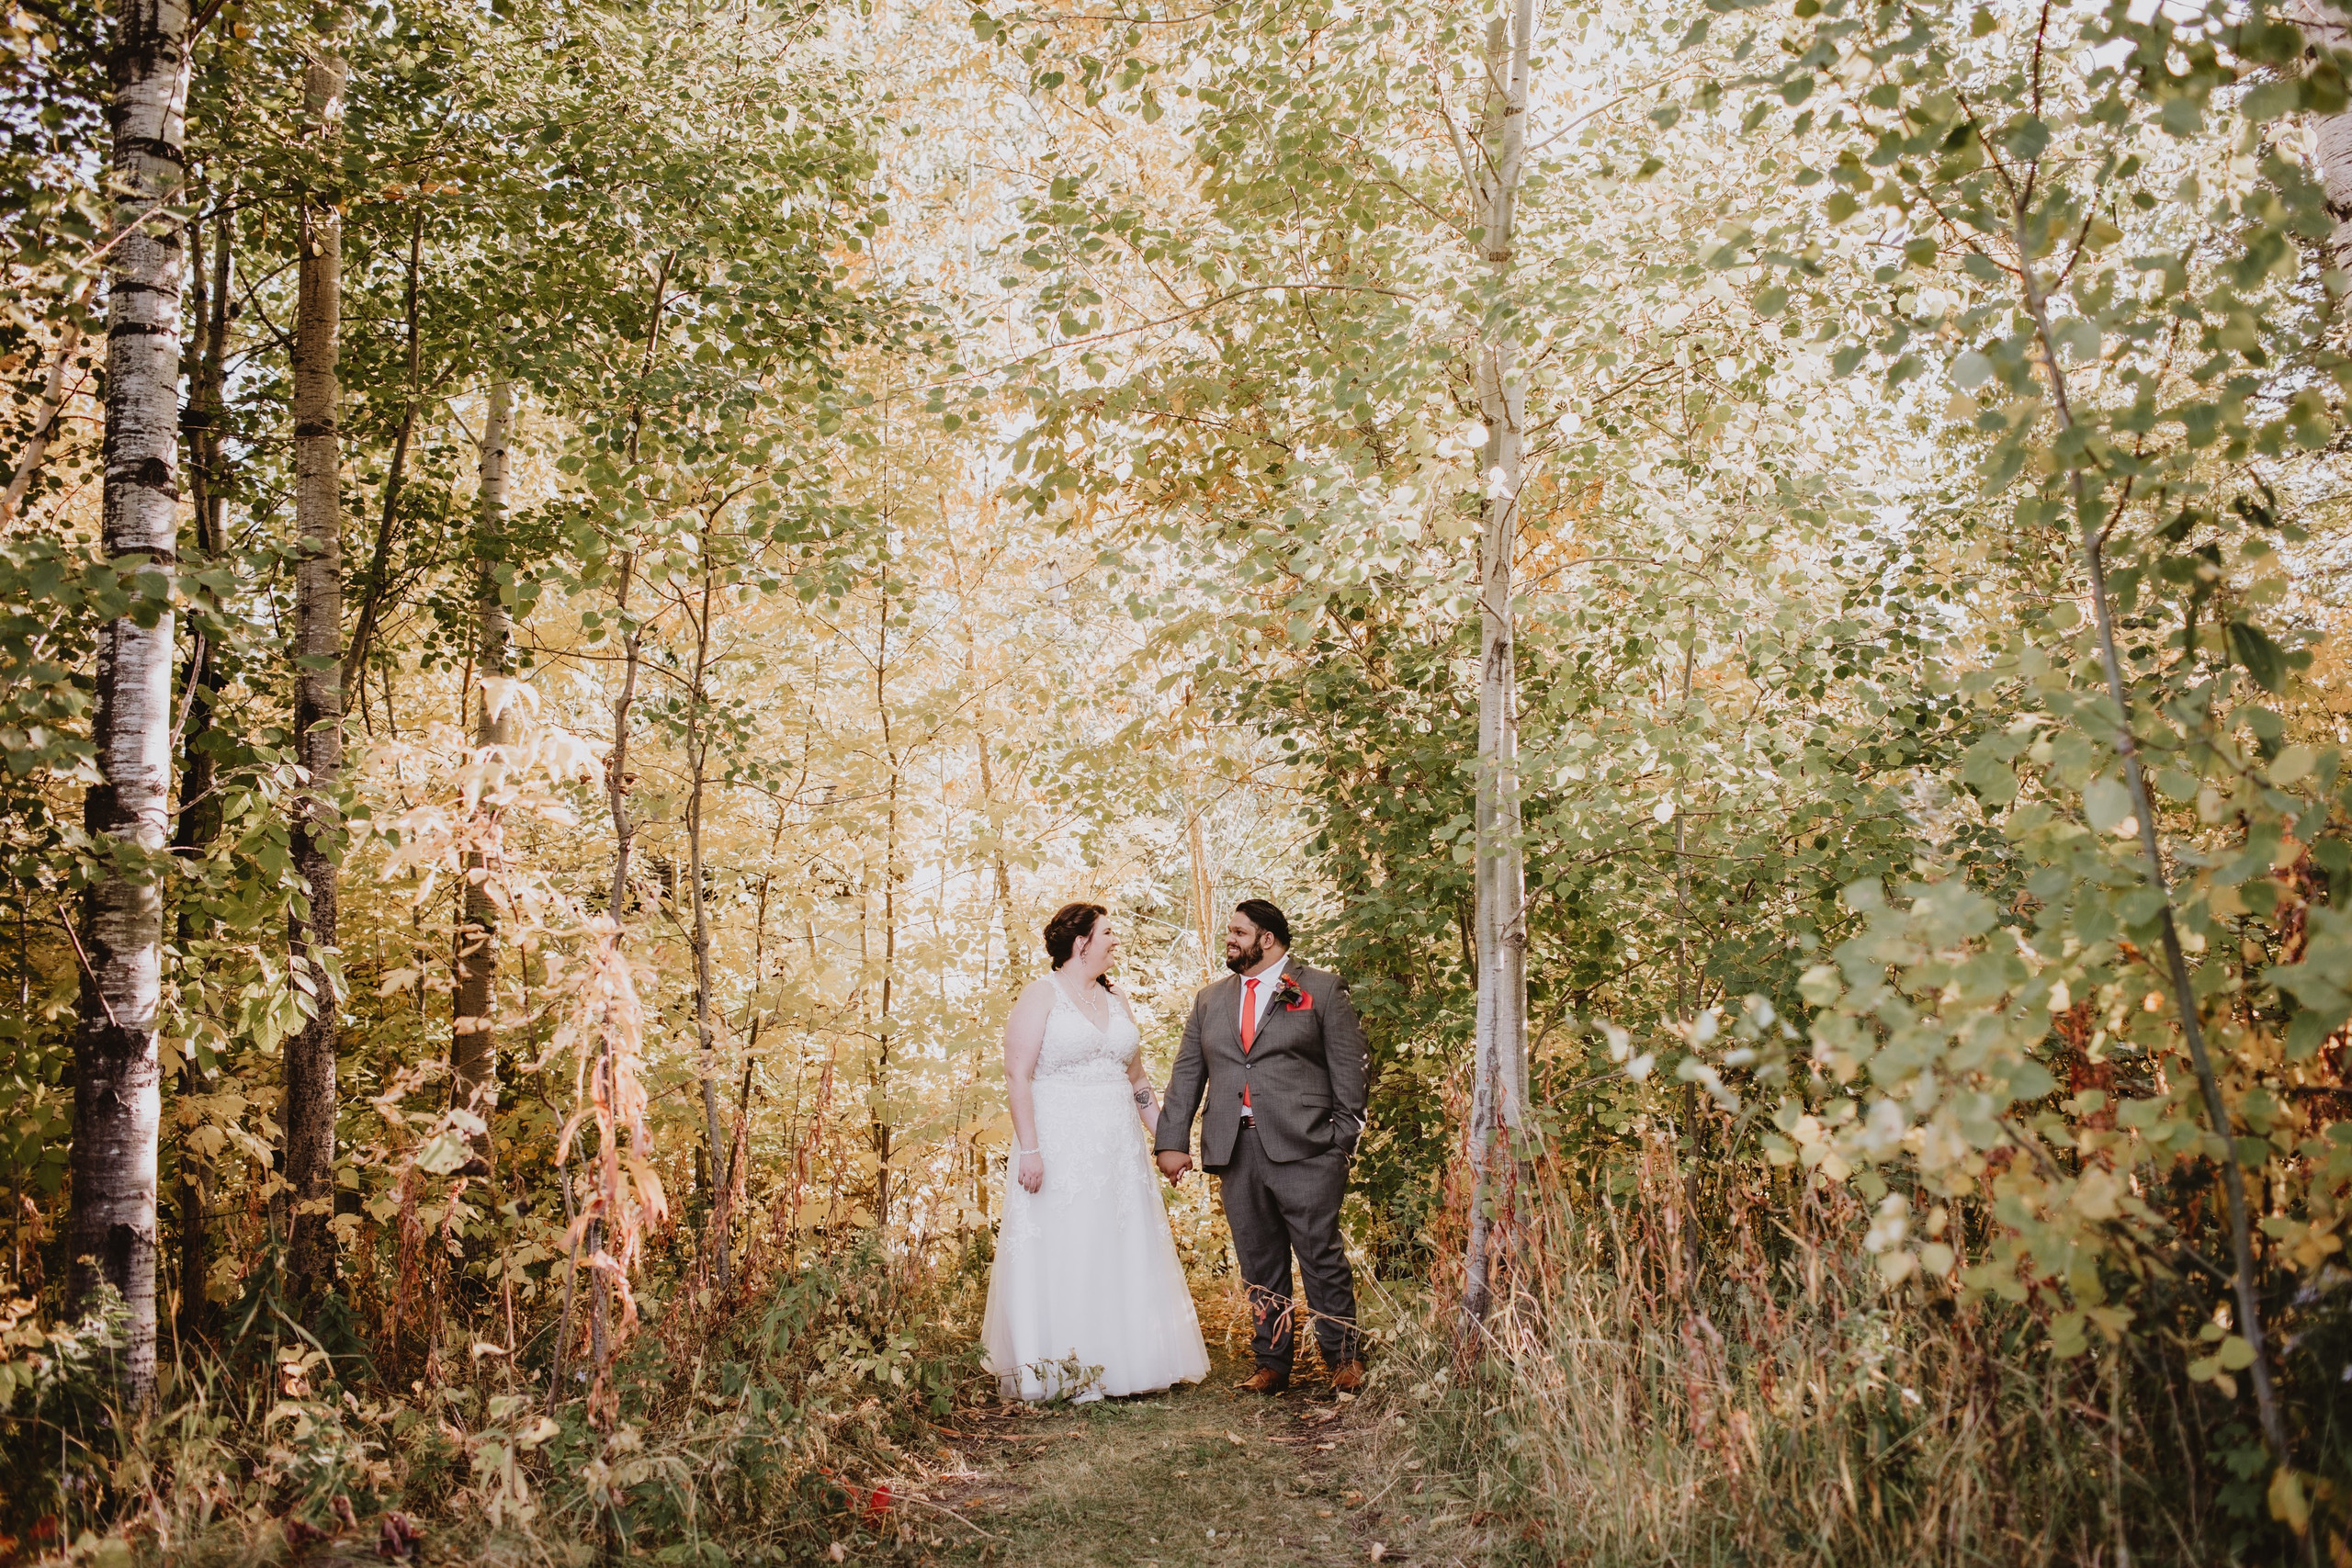 Wedding Couple in Forest, posing for fall wedding day portraits.